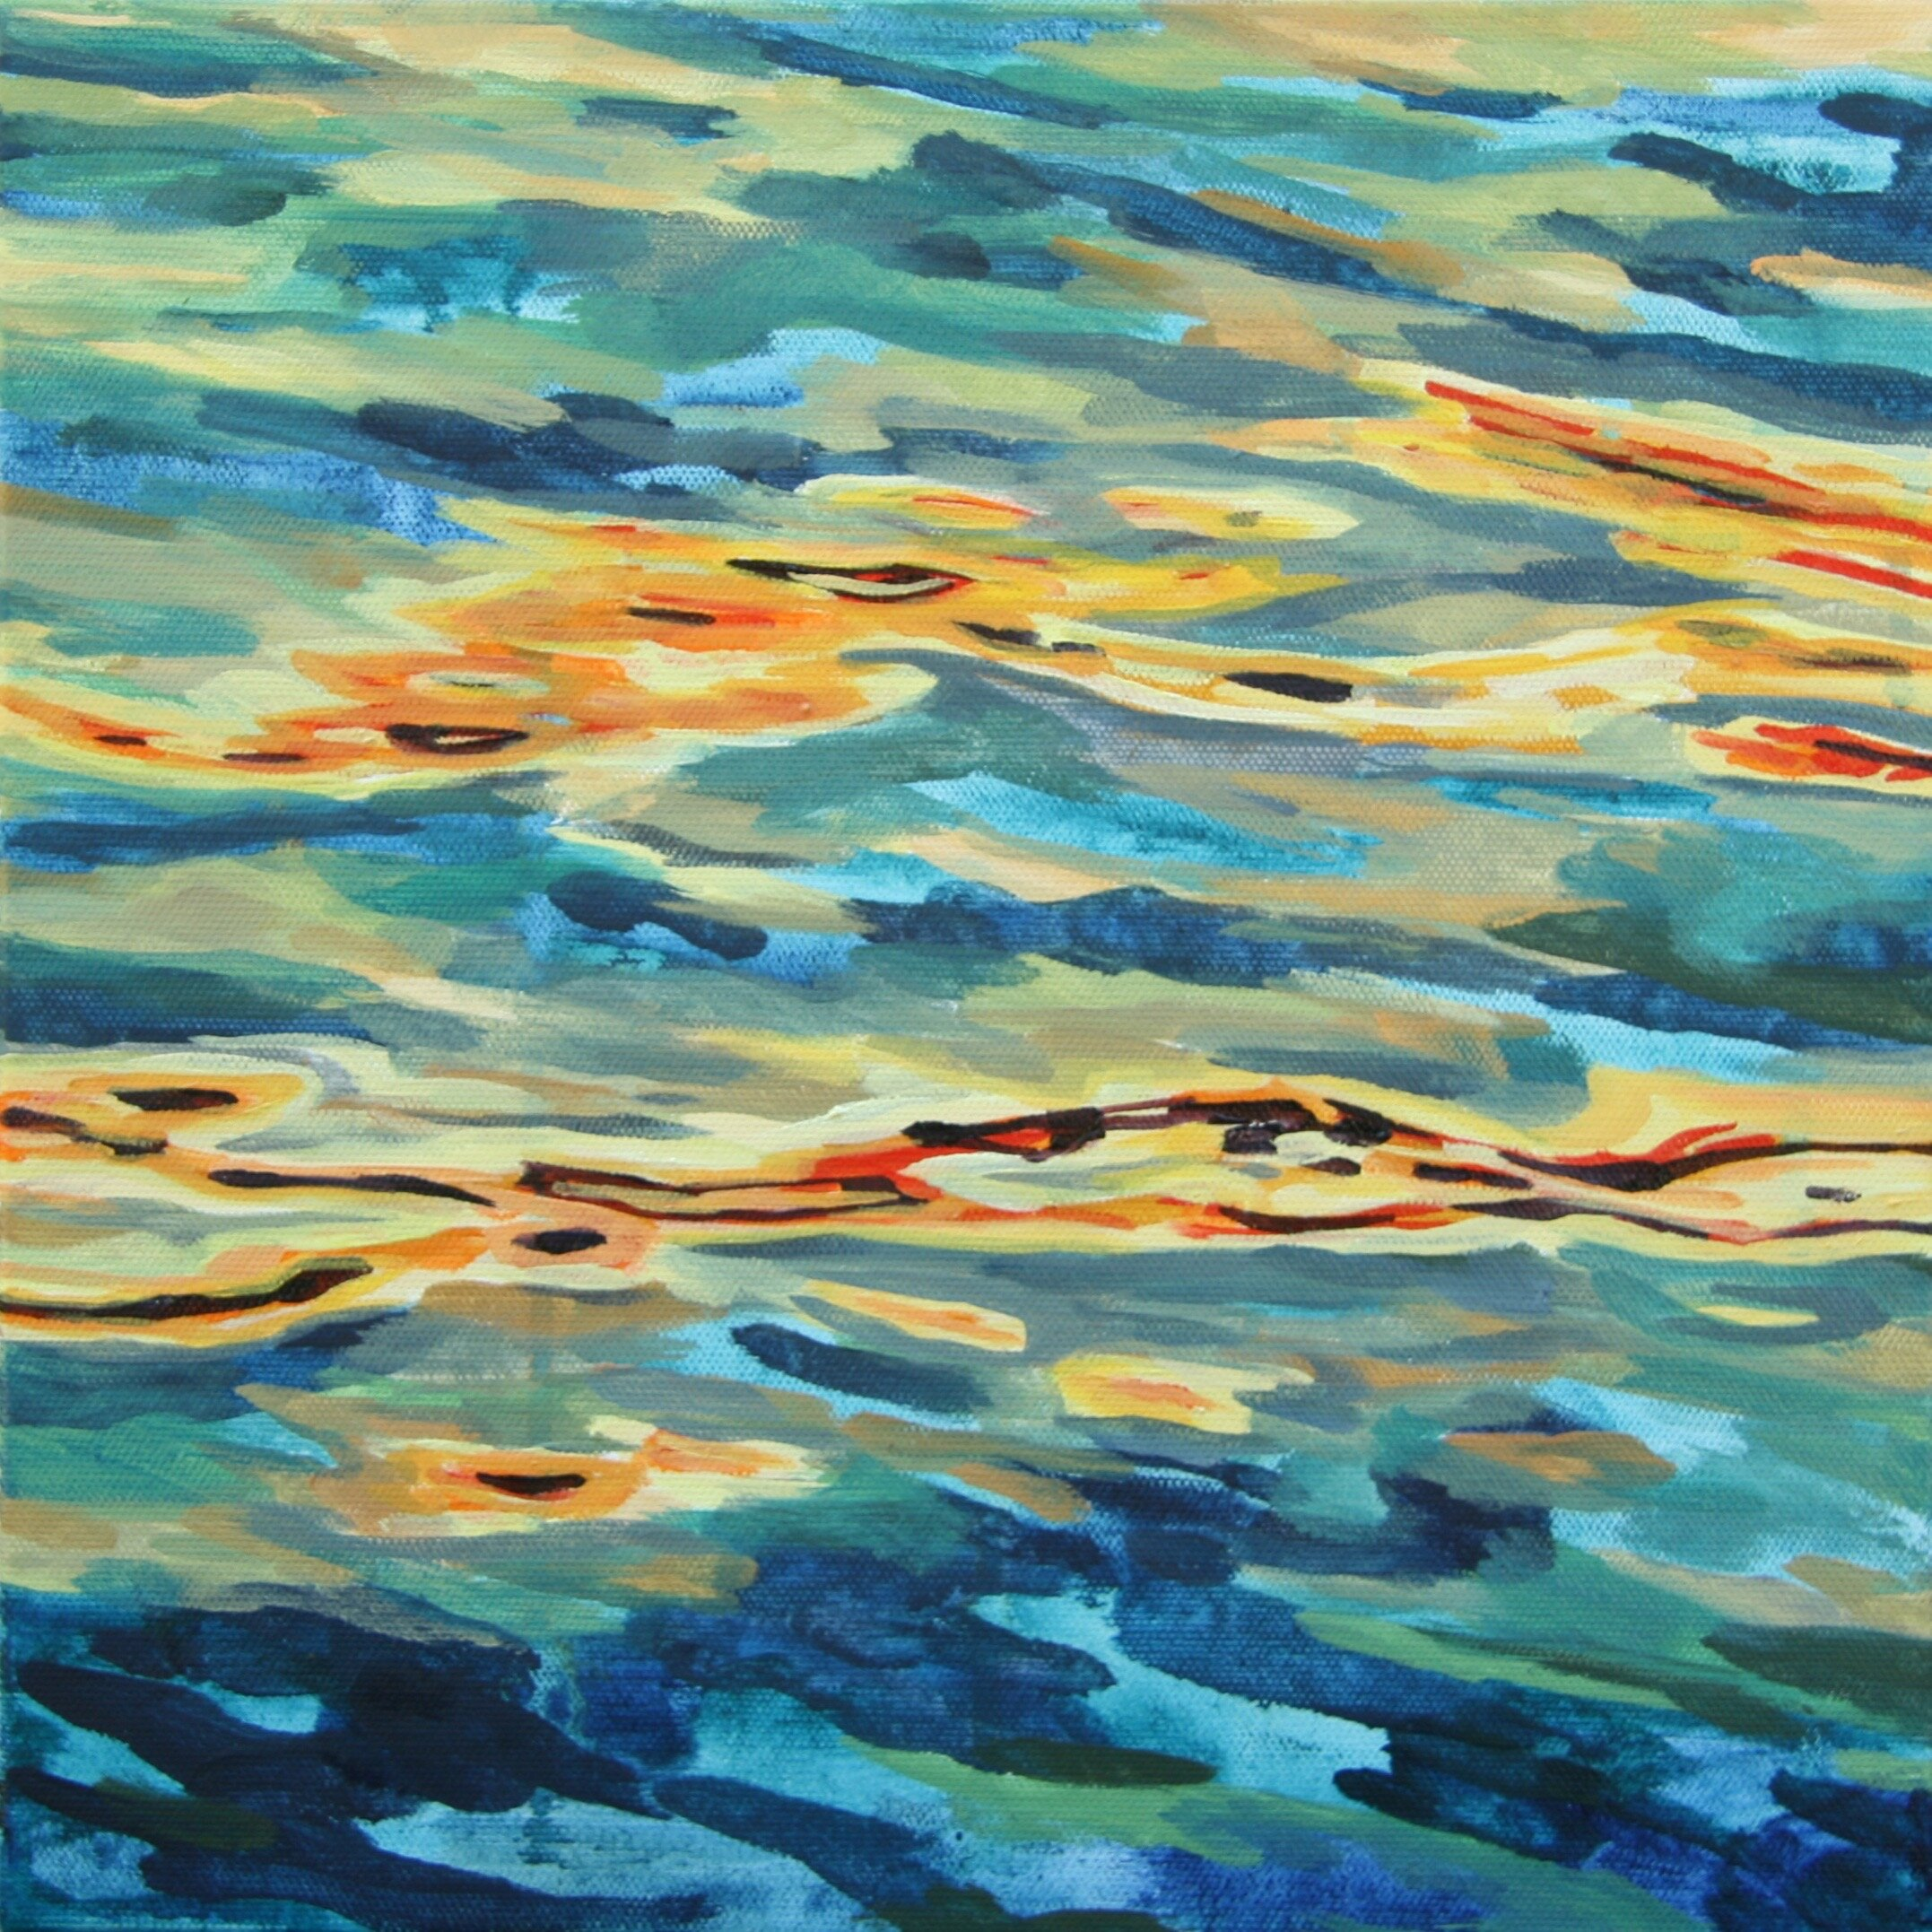 """'Stream'  2015  12"""" x 12""""  water soluble oil on canvas  sold"""